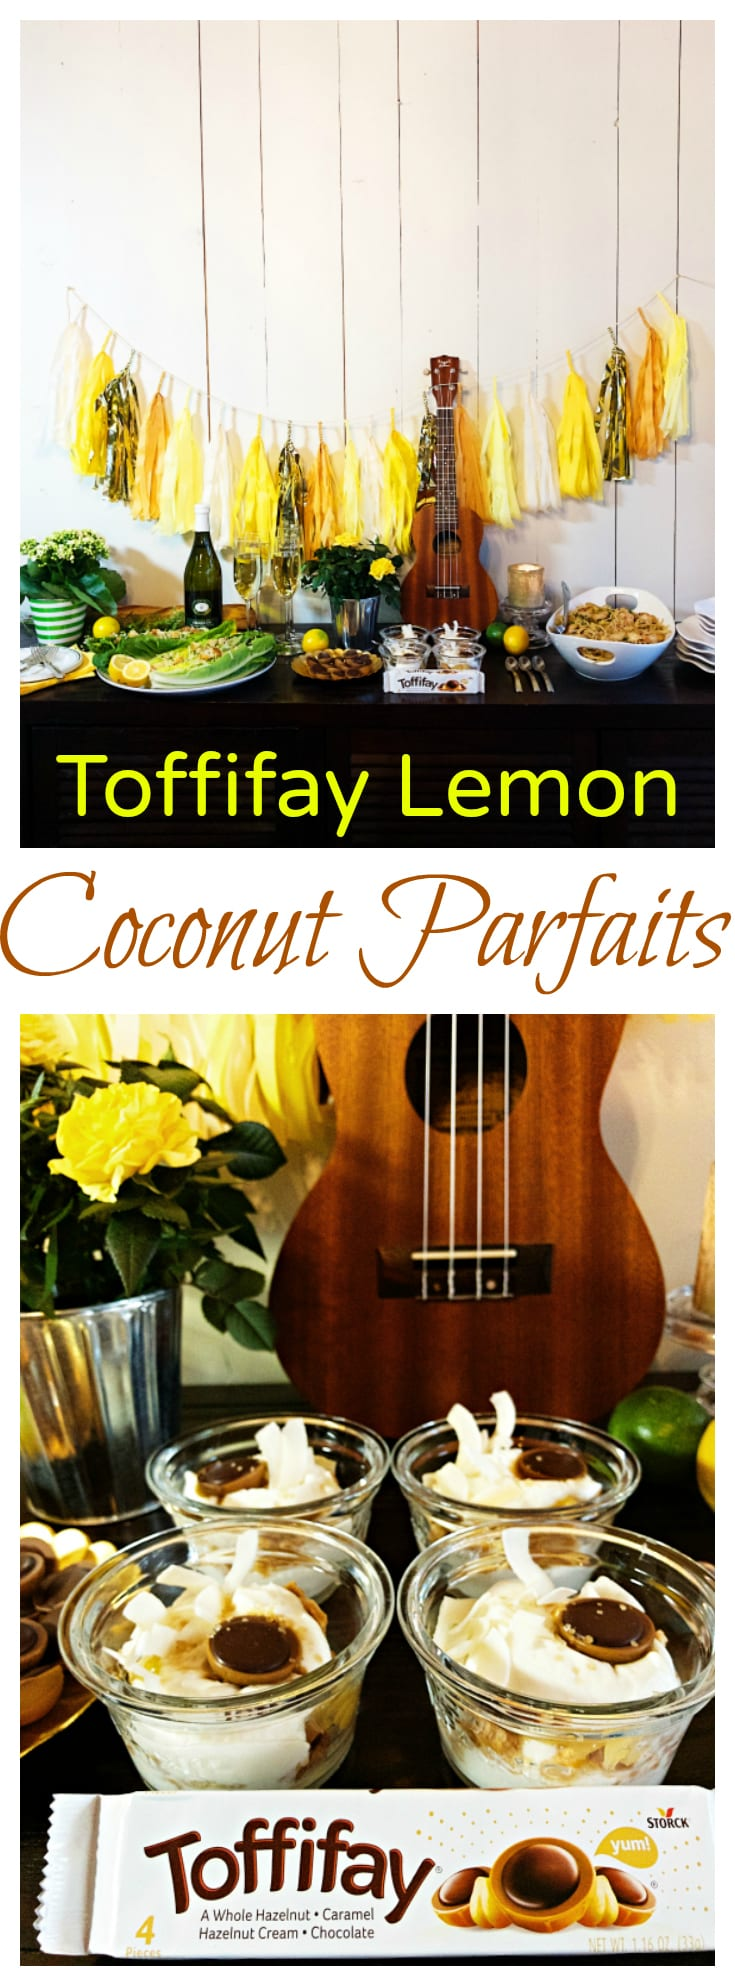 Toffifay Lemon Coconut Parfaits